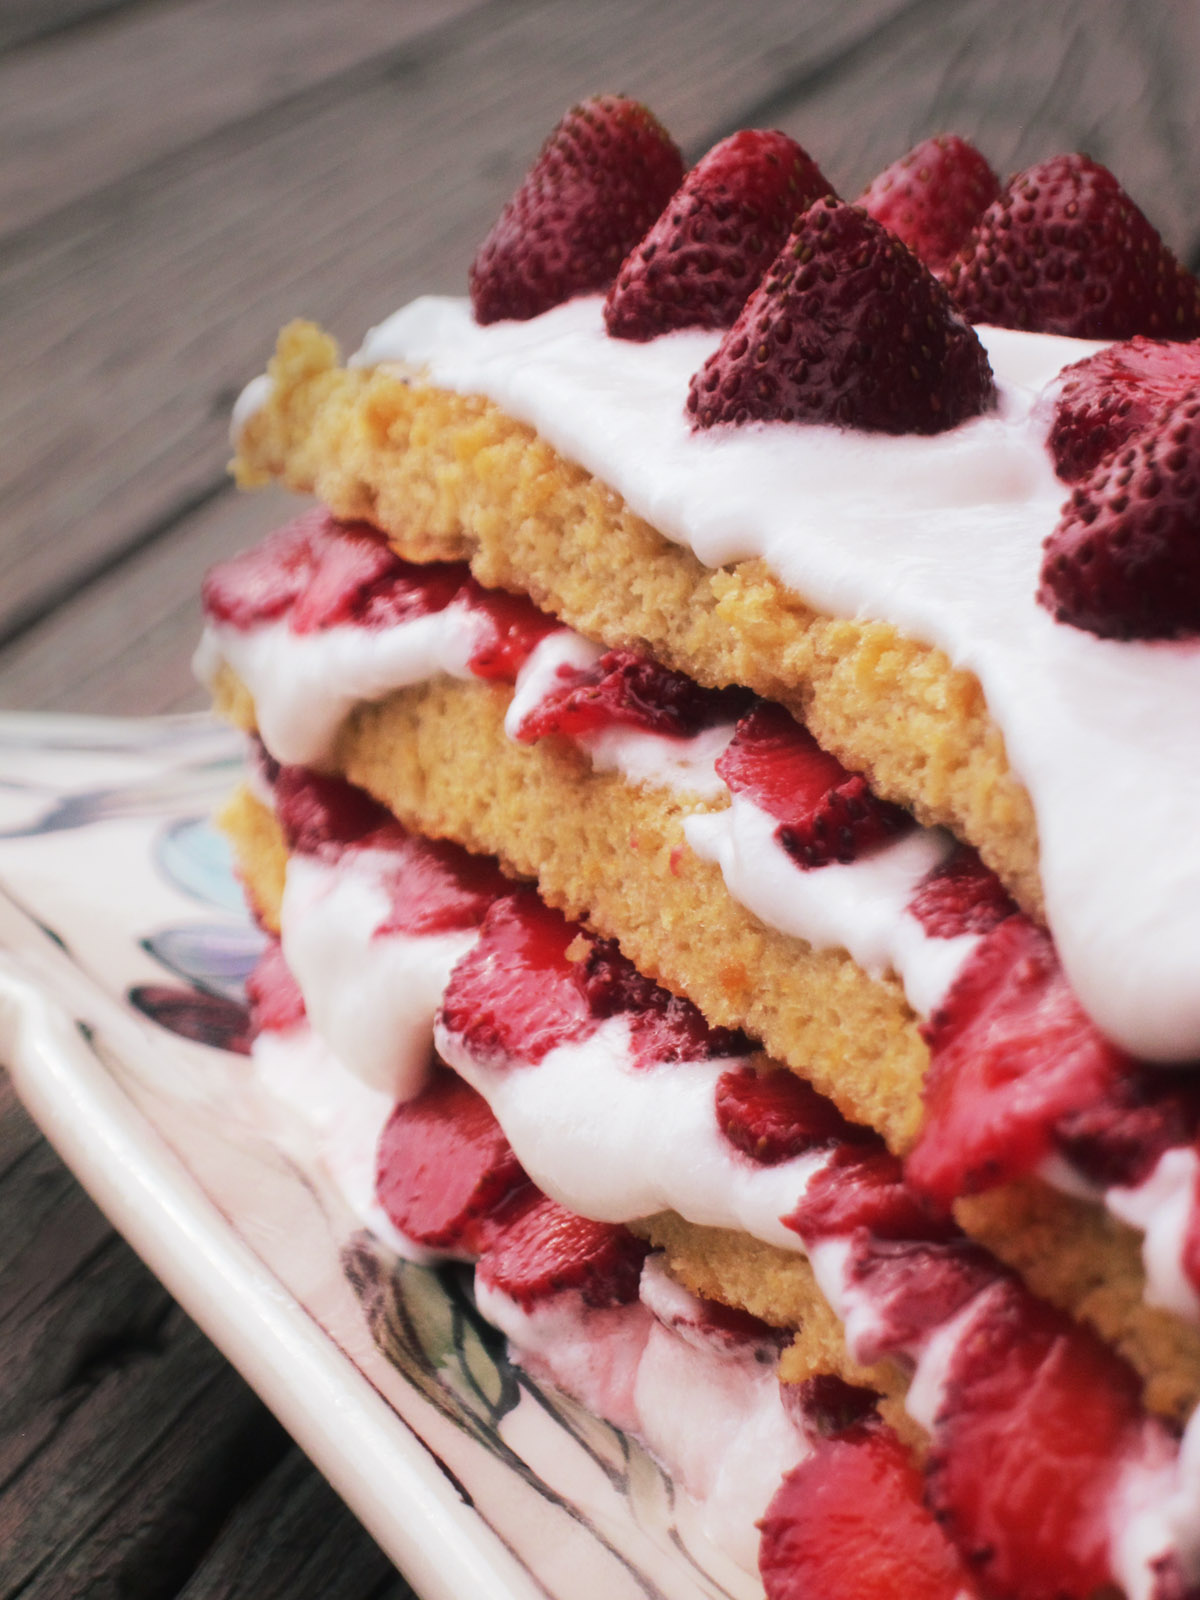 Strawberry Heart Berry Sponge Cake on Platter